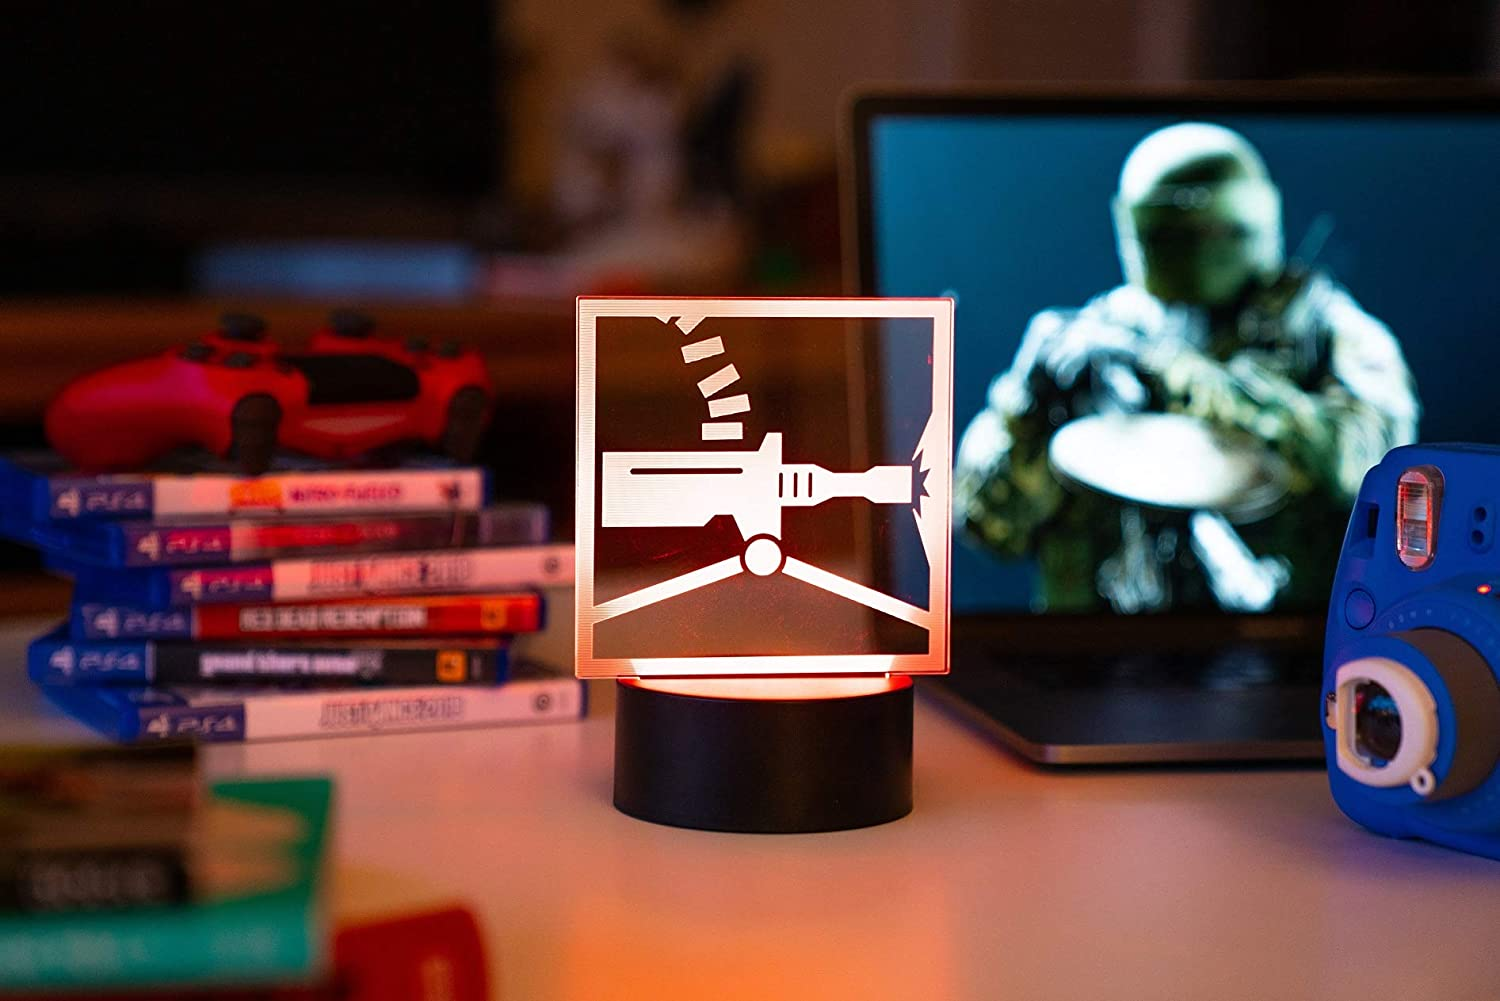 Six Siege LED Lamp - Tachanka Operator - Rainbow Six Siege Decor for The Bedroom or Gaming Studio - Color Changing LED Nightlight Great for Cosplay Photoshoots with Any R6 Character